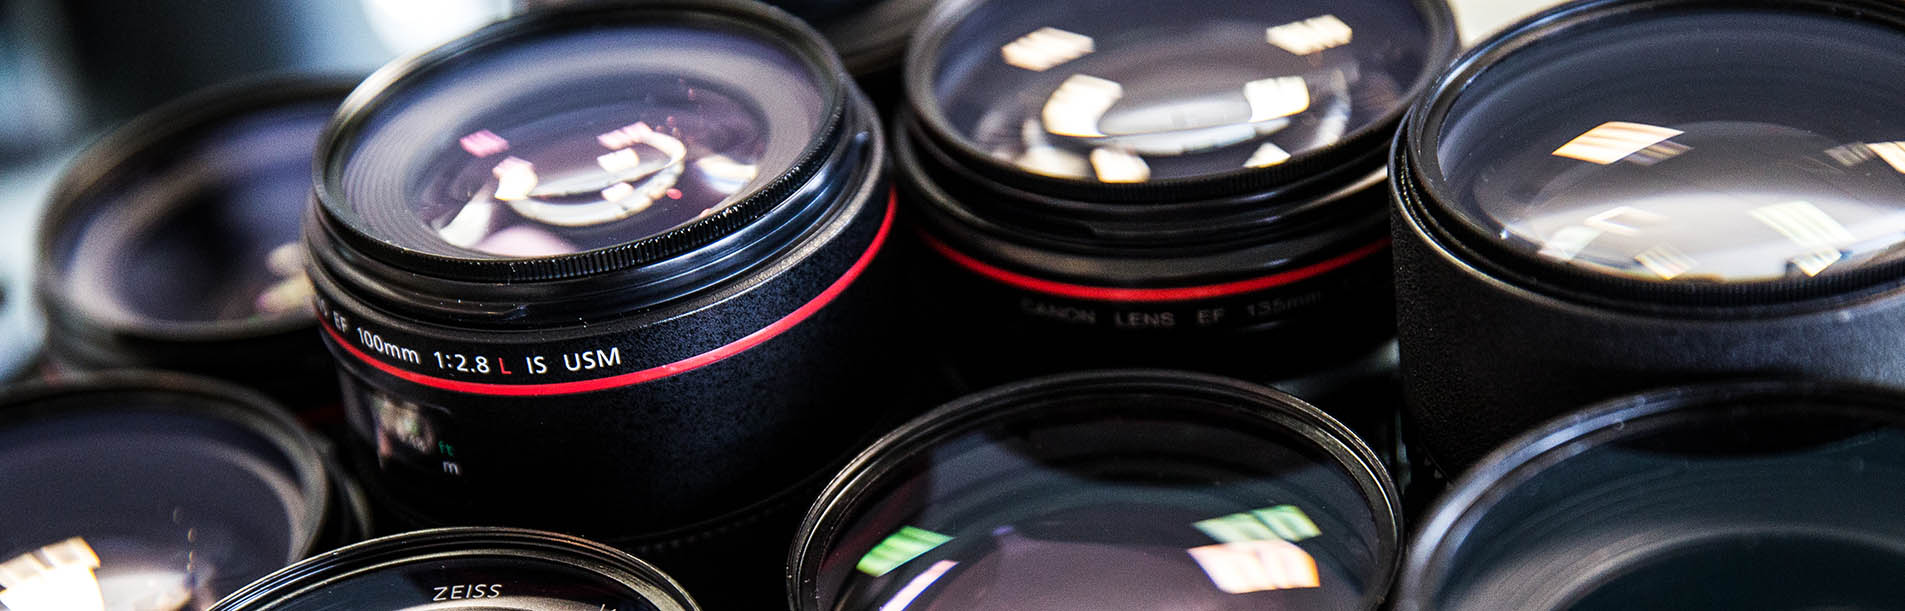 Camera Lens Calibration Services - Canon, Sigma, Nikon, Sony & More